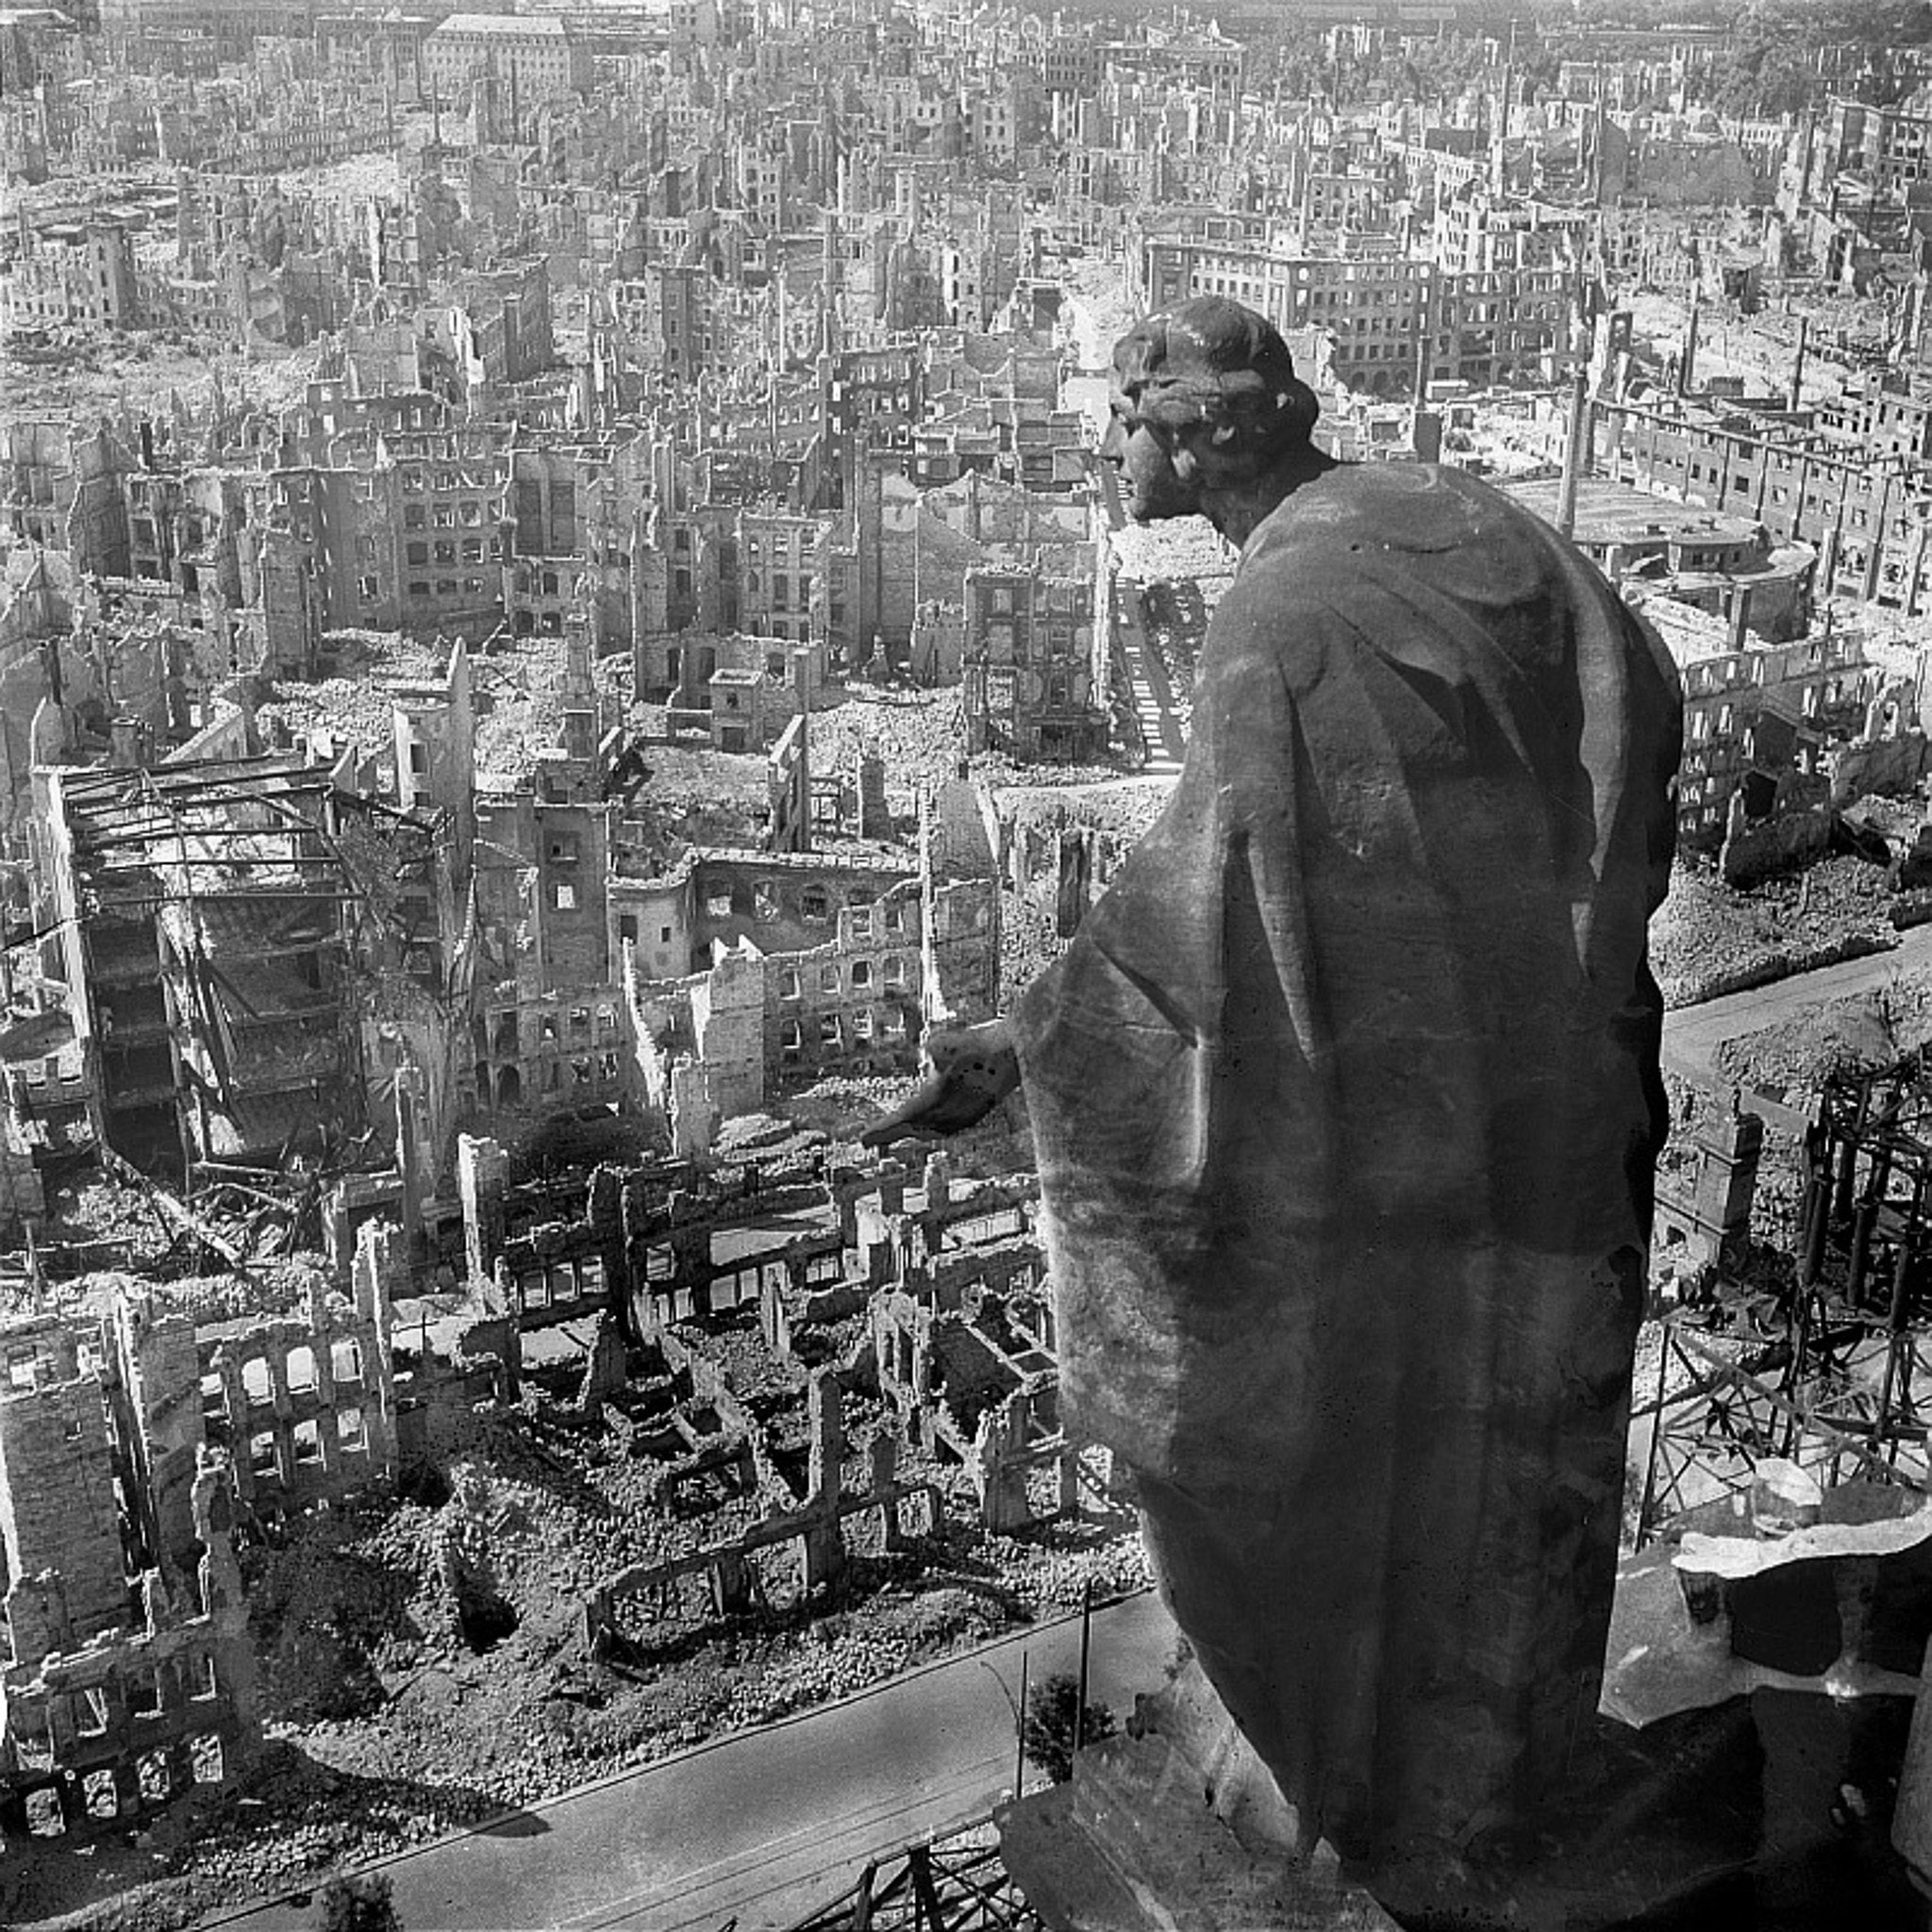 A black and white photo showing the view from the Rathausturm over Dresden, late 1945